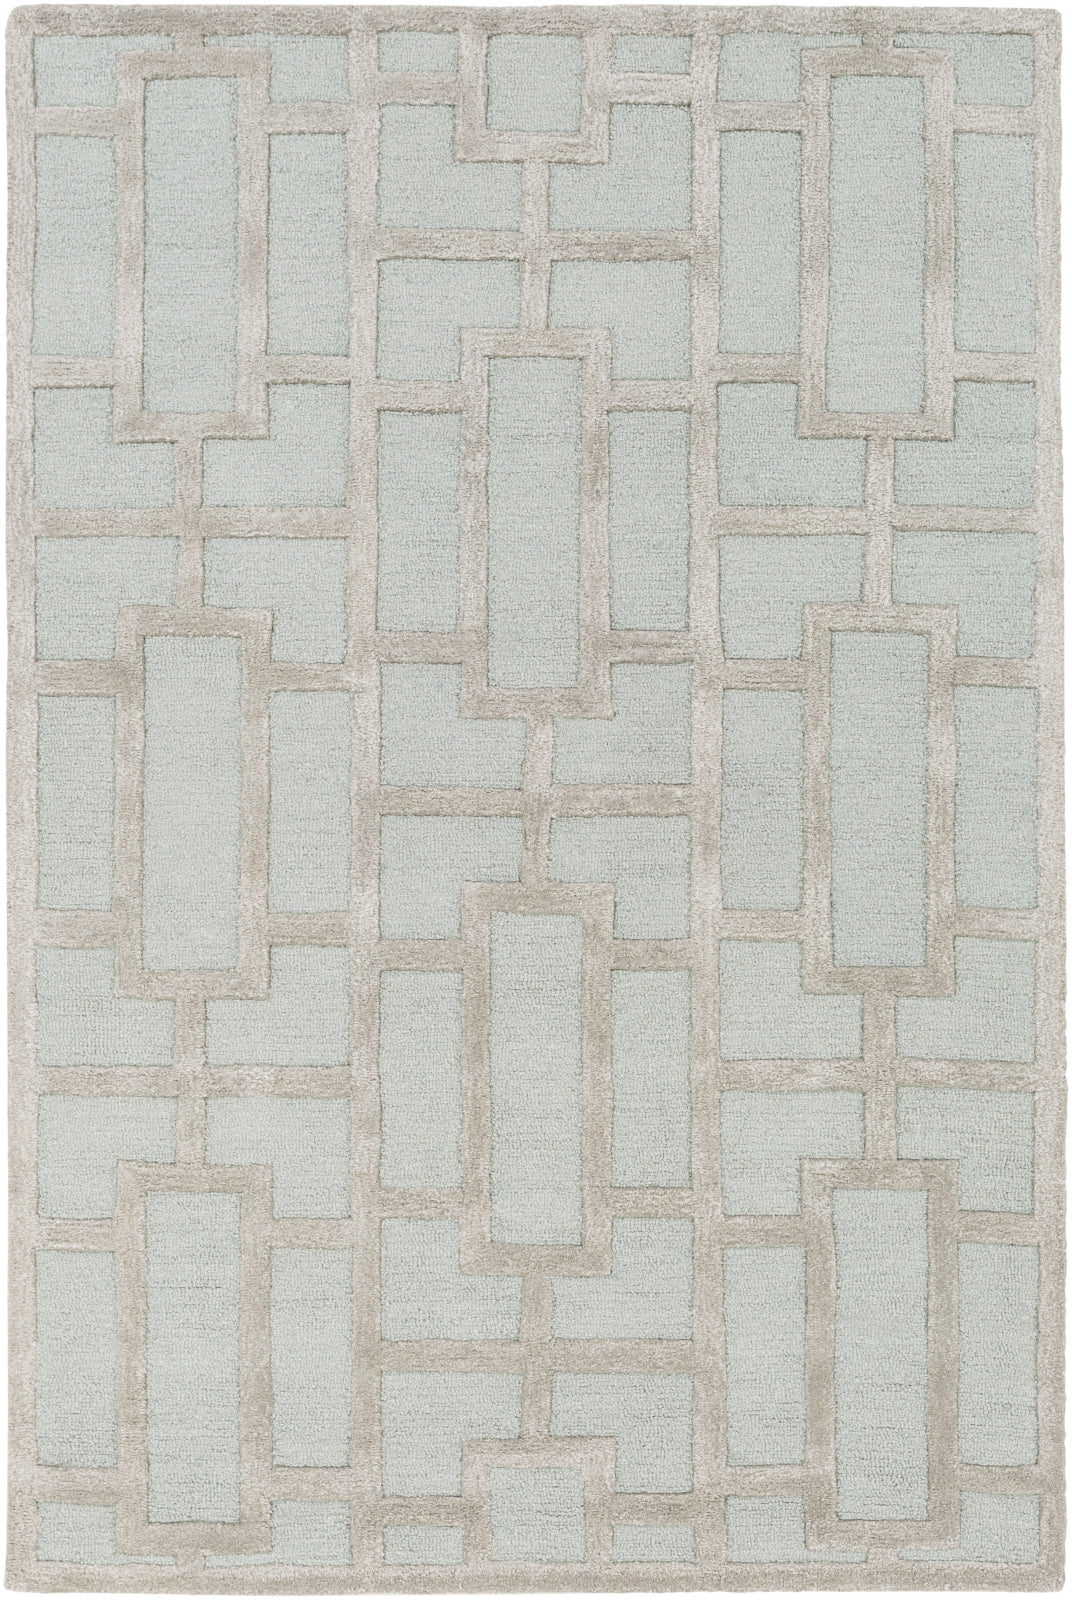 Artistic Weavers Arise Addison AWRS2139 Area Rug main image